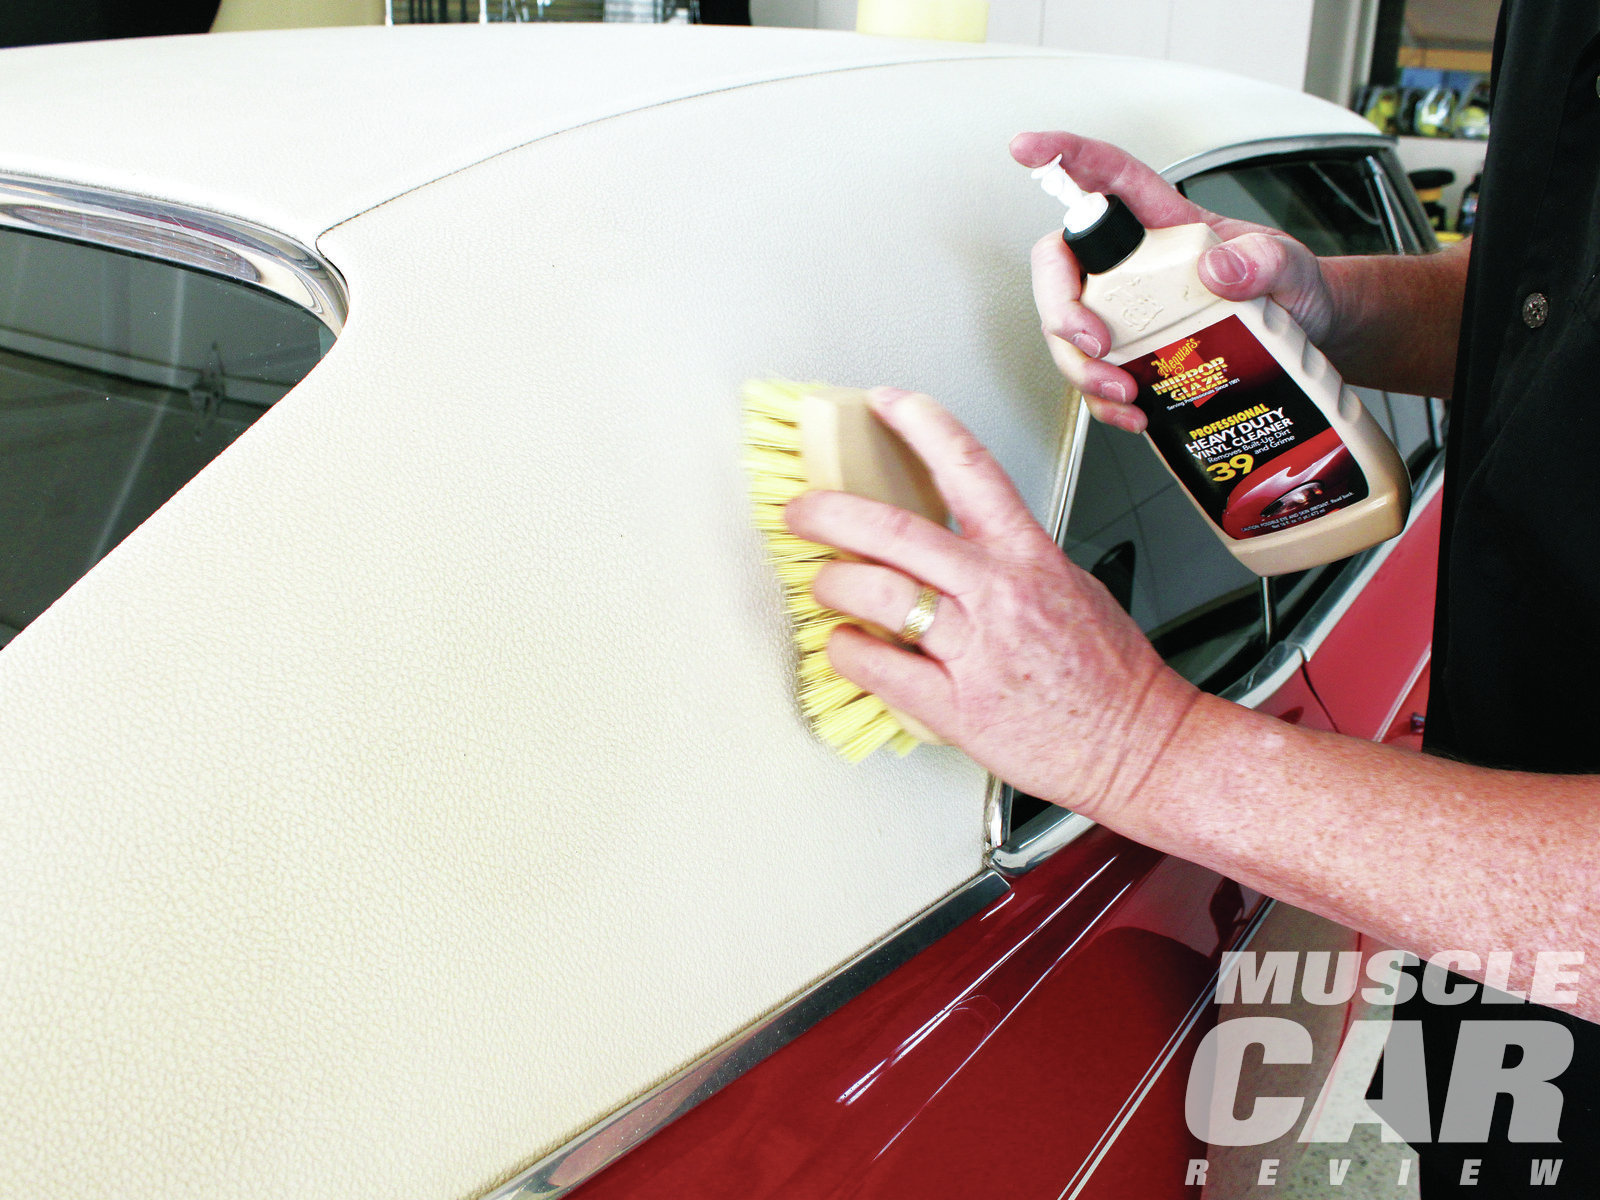 Though this story is about paint care, we also asked Mike for a recommendation on how to treat the GTO's vinyl top. Meguiar's makes a professional-grade Heavy Duty Vinyl Cleaner that you spray on and then work into the vinyl with a brush. You have to buy it at a paint and body equipment store, but the results are worth it.